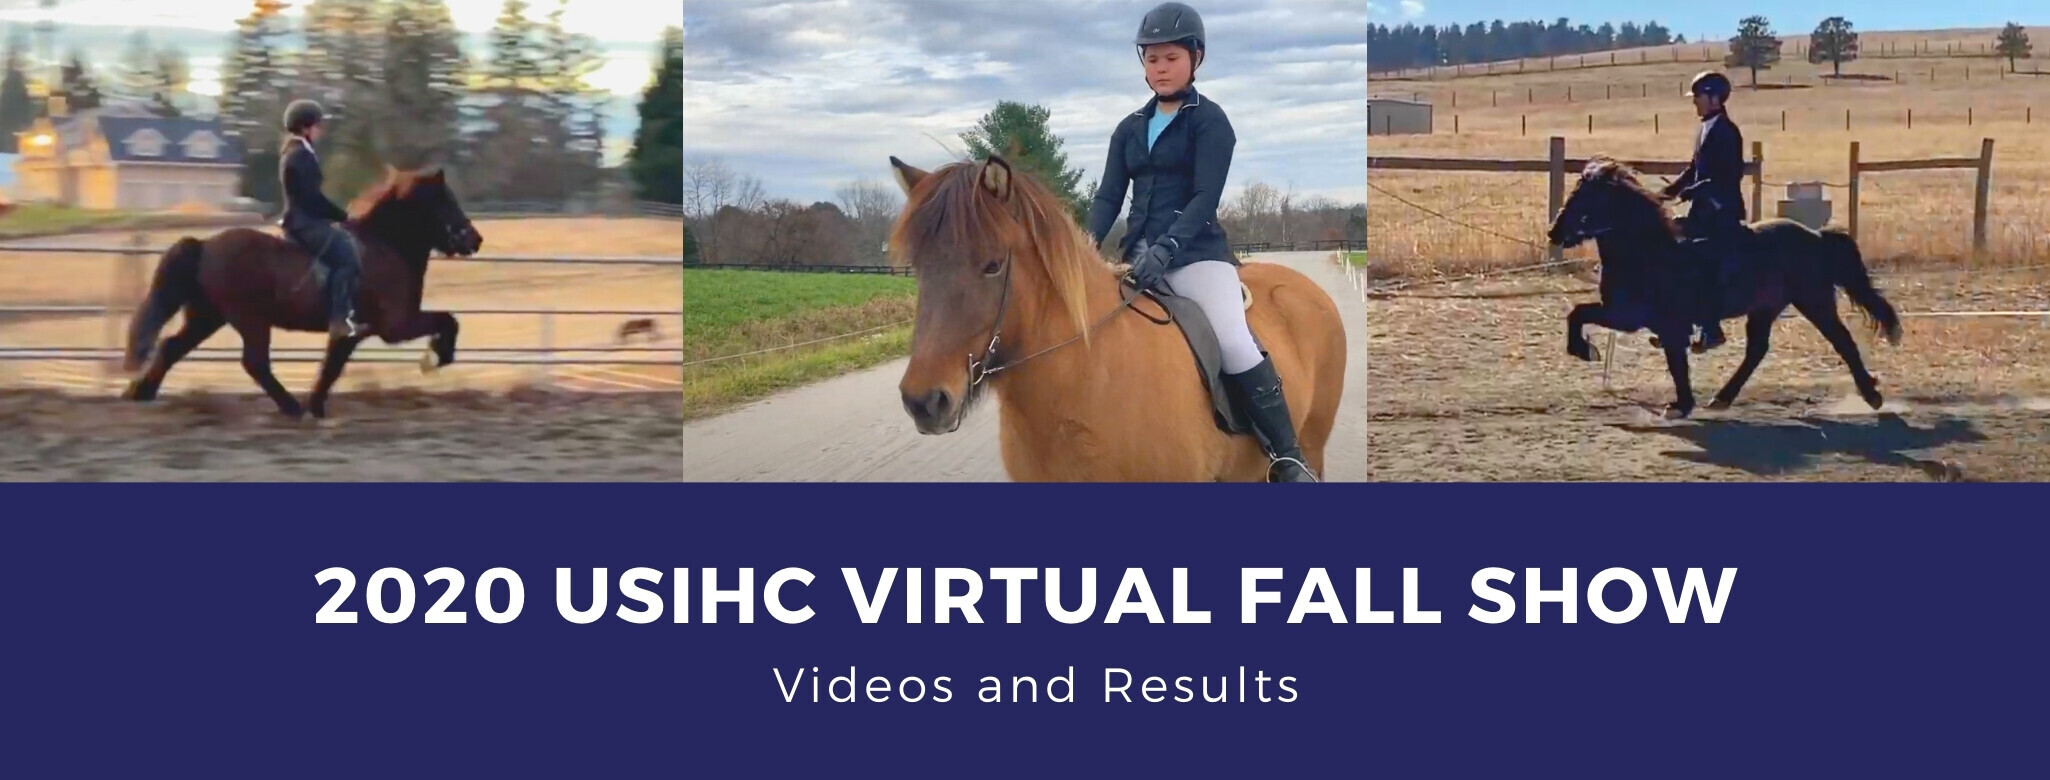 USIHC Virtual Fall Show Videos and Results